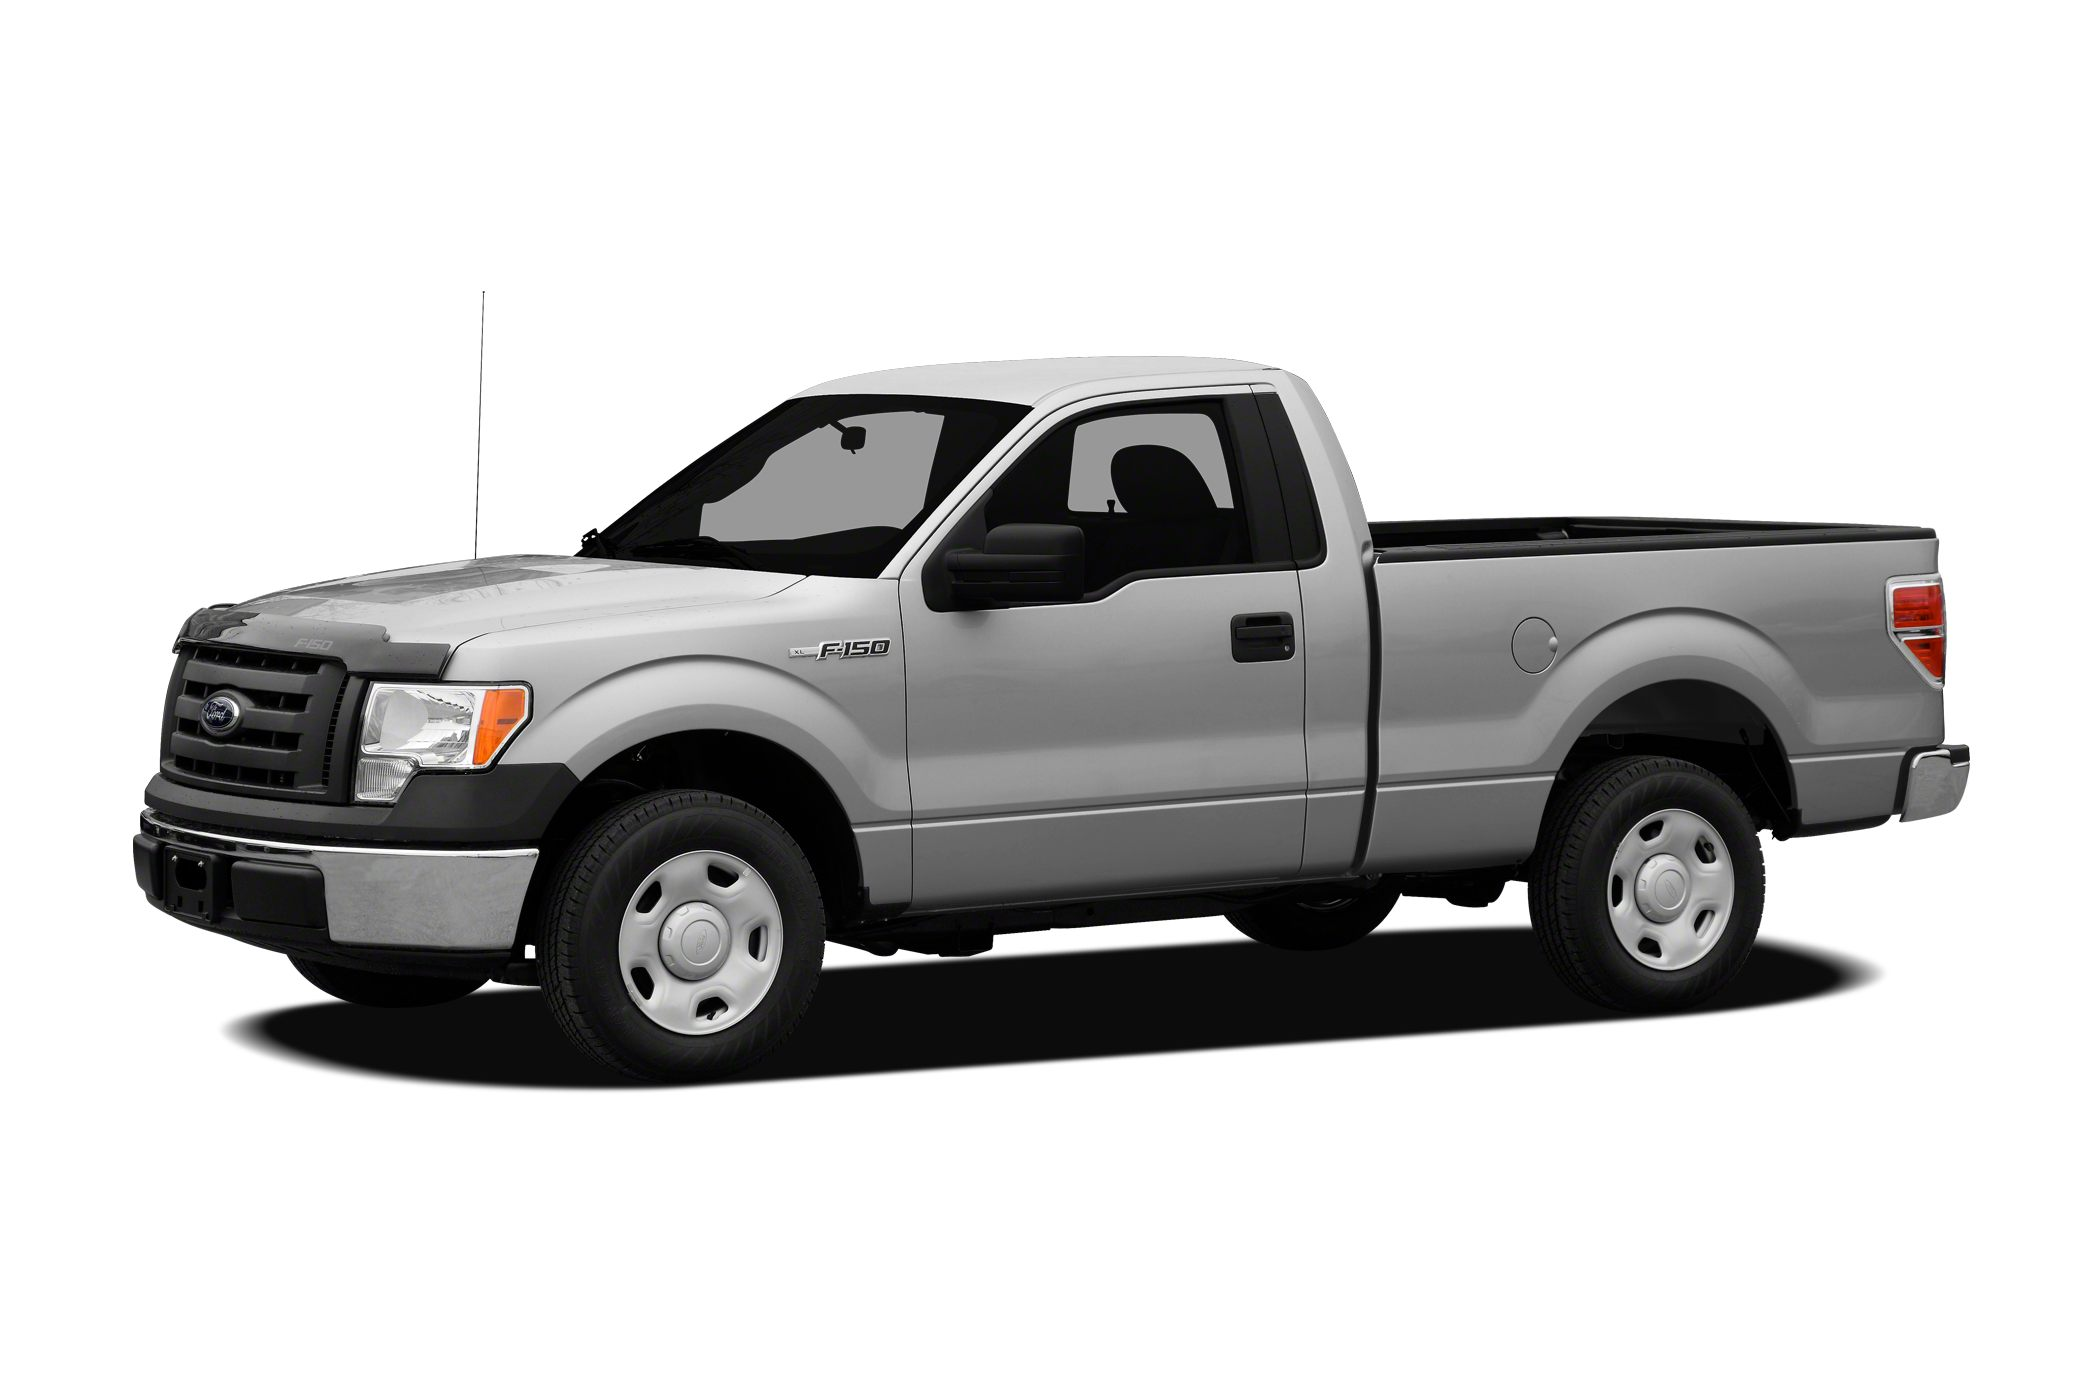 2012 Ford F150 XLT Crew Cab Pickup for sale in Zanesville for $32,000 with 39,218 miles